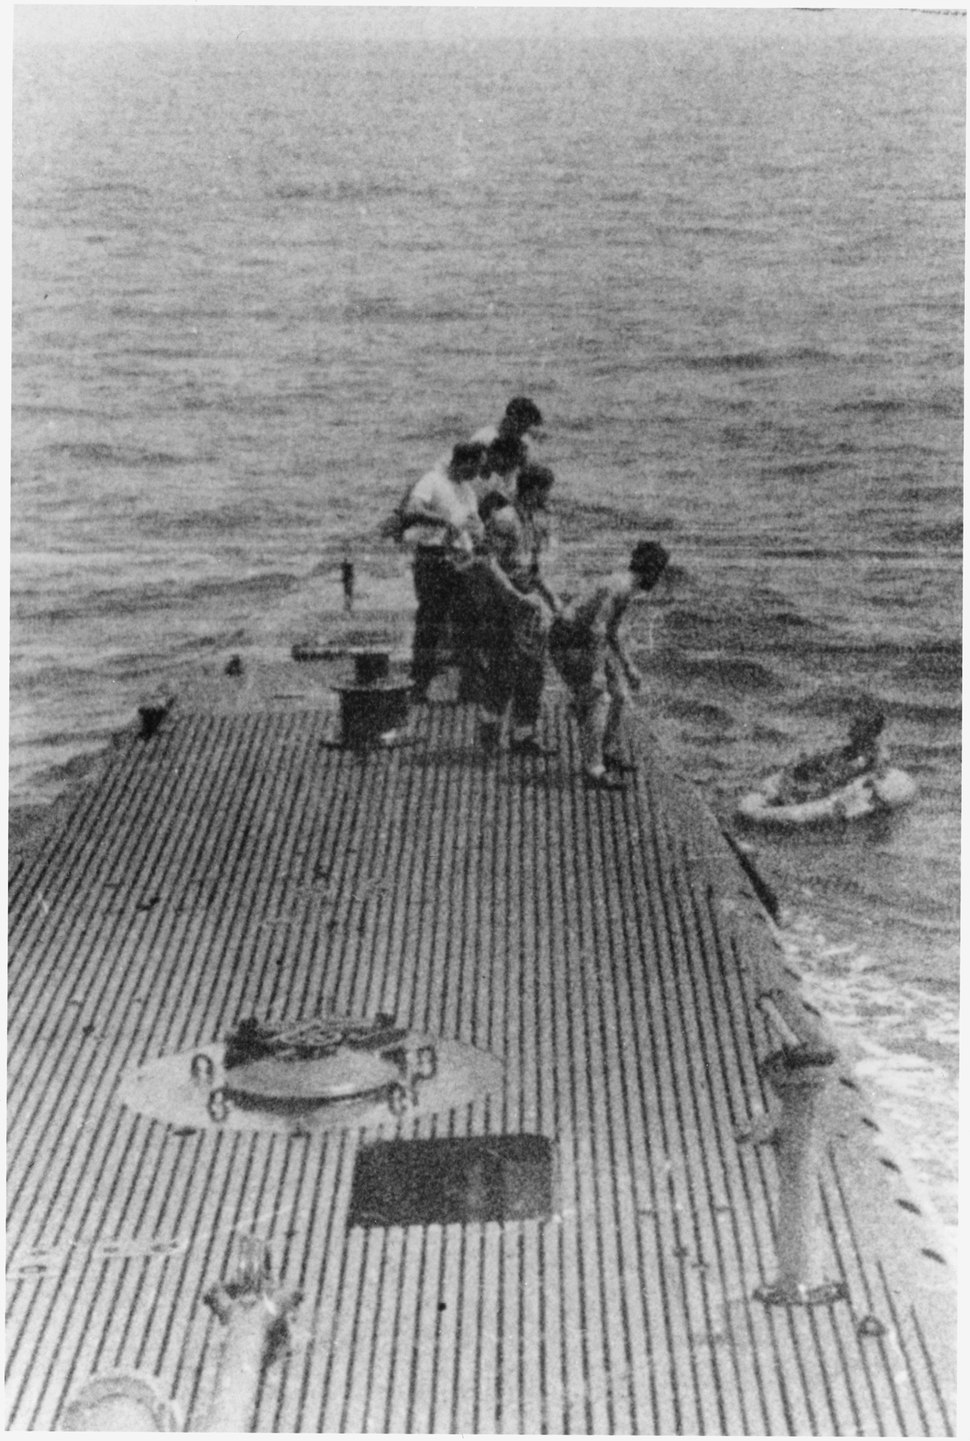 George Bush being rescued by the submarine, the U.S.S. Finback, after being shot down while on a bombing run of the... - NARA - 186382